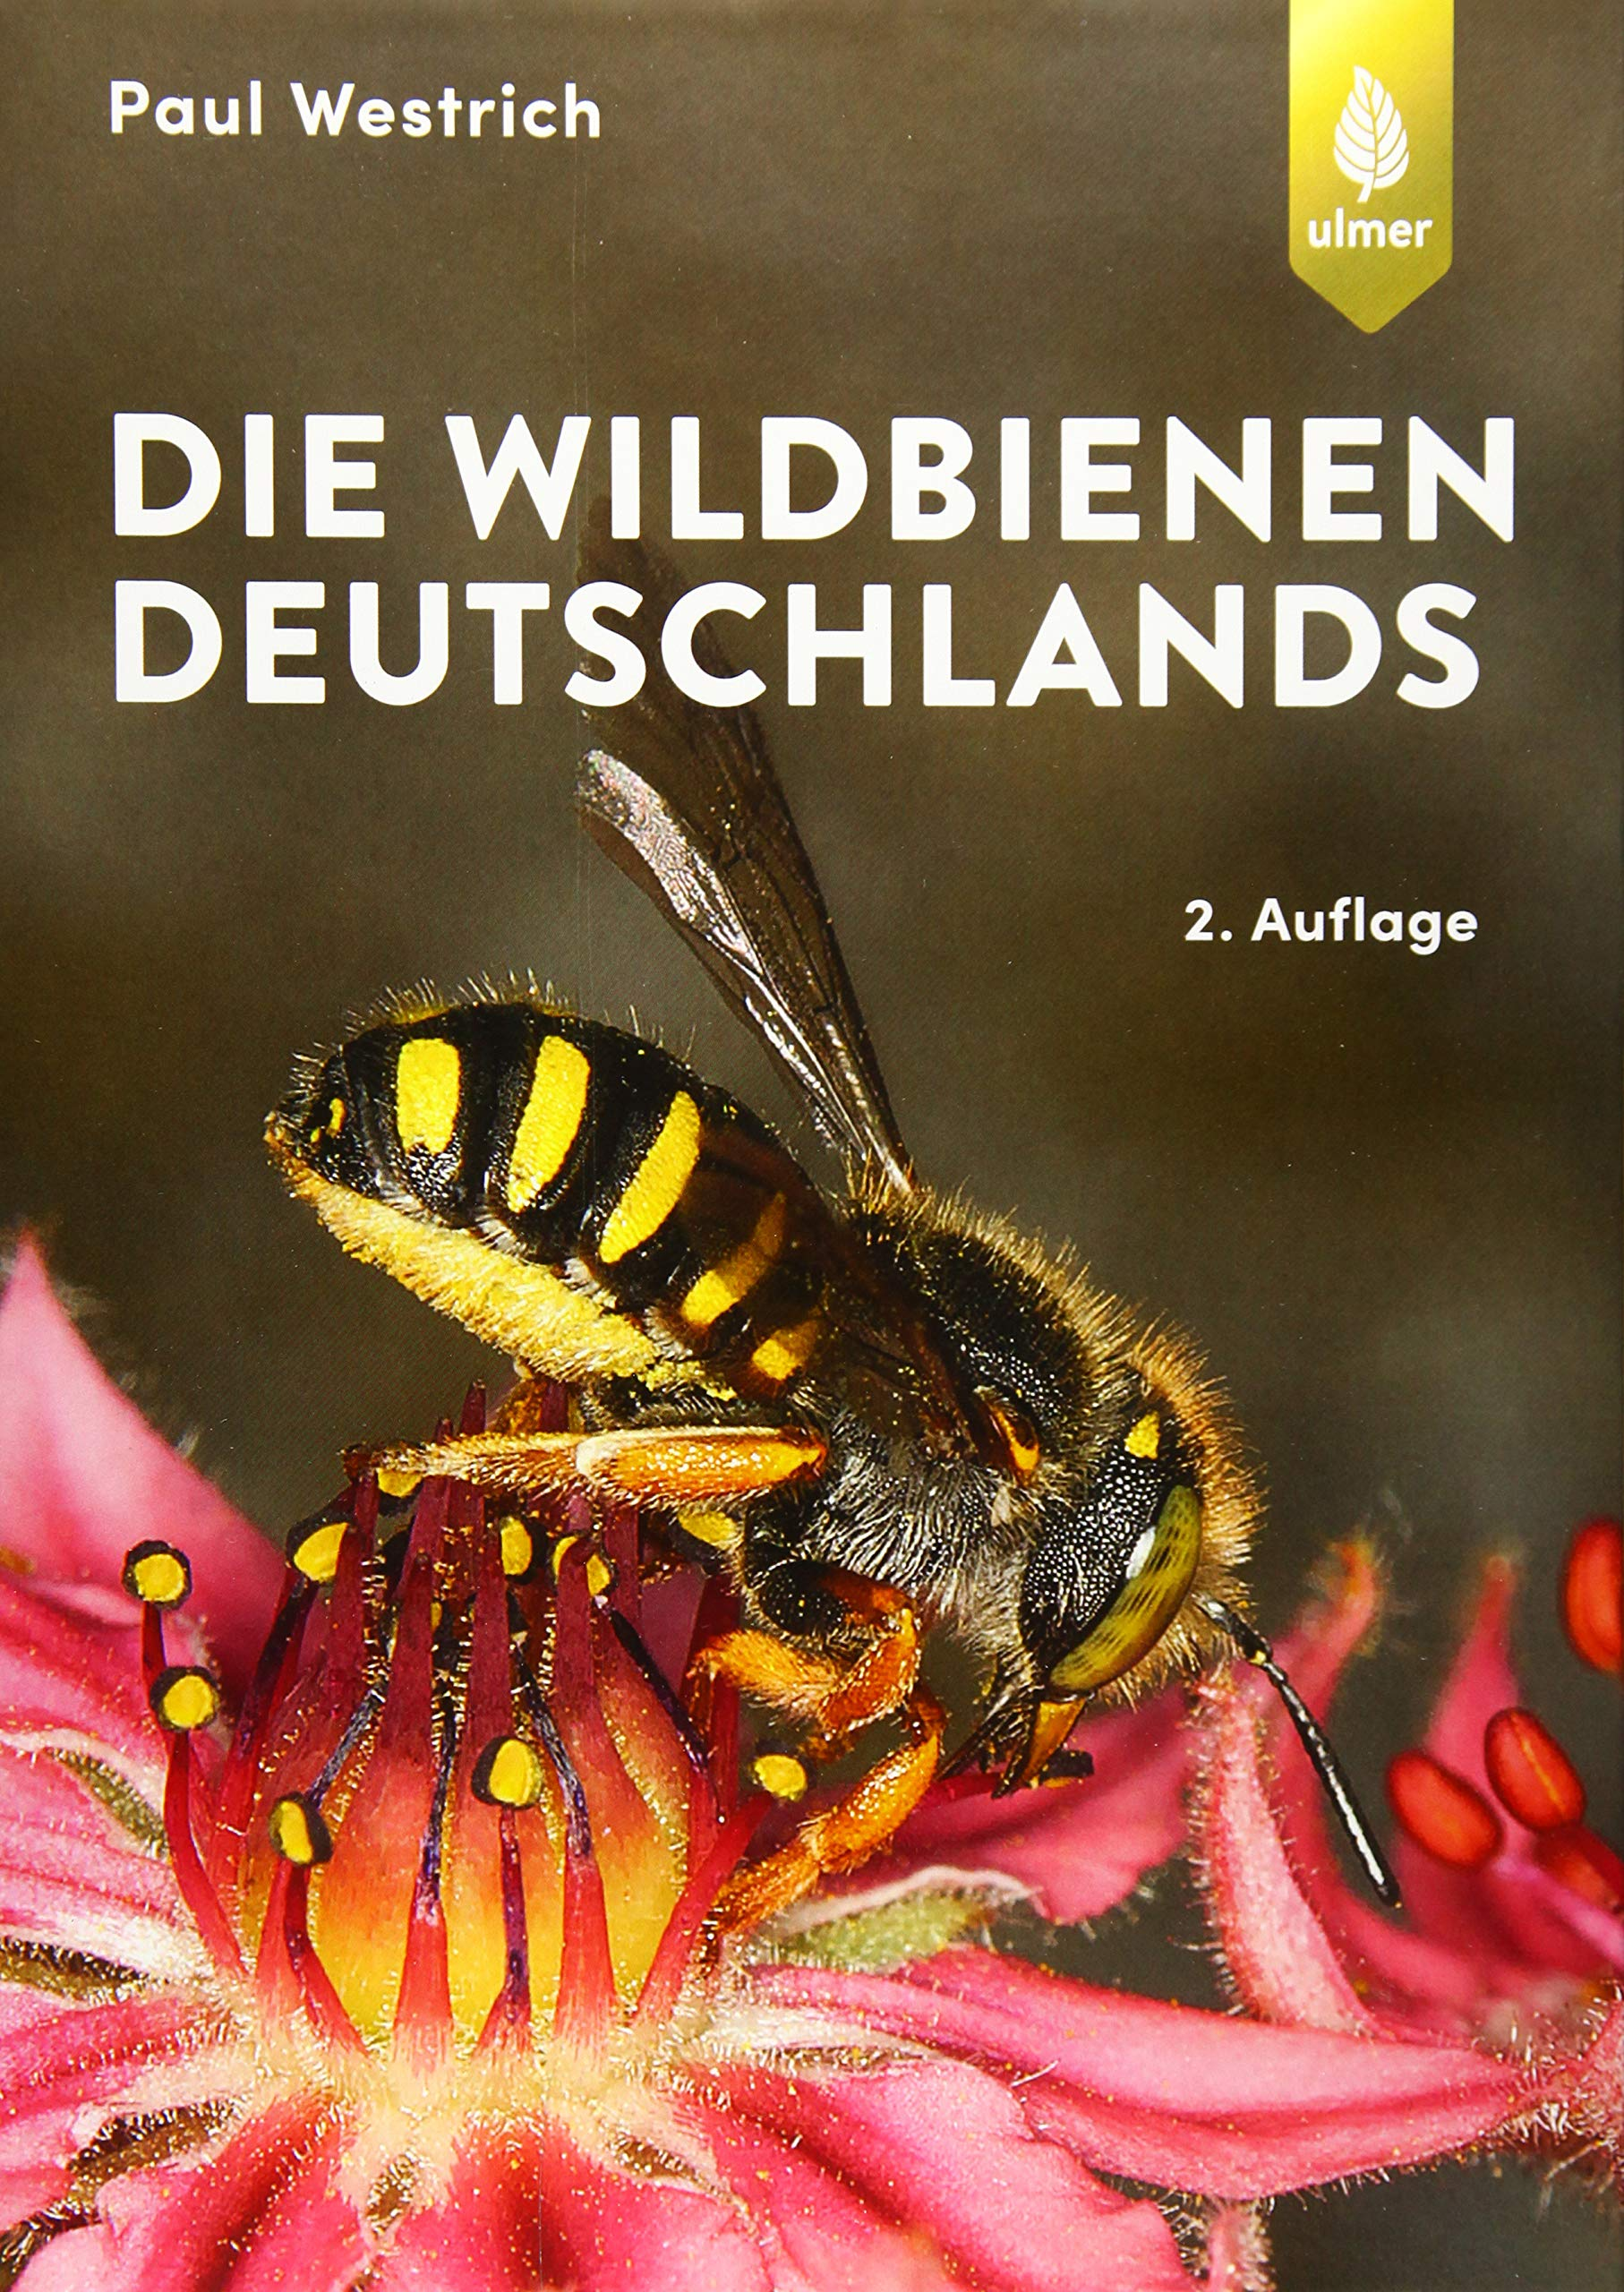 Image OfDie Wildbienen Deutschlands